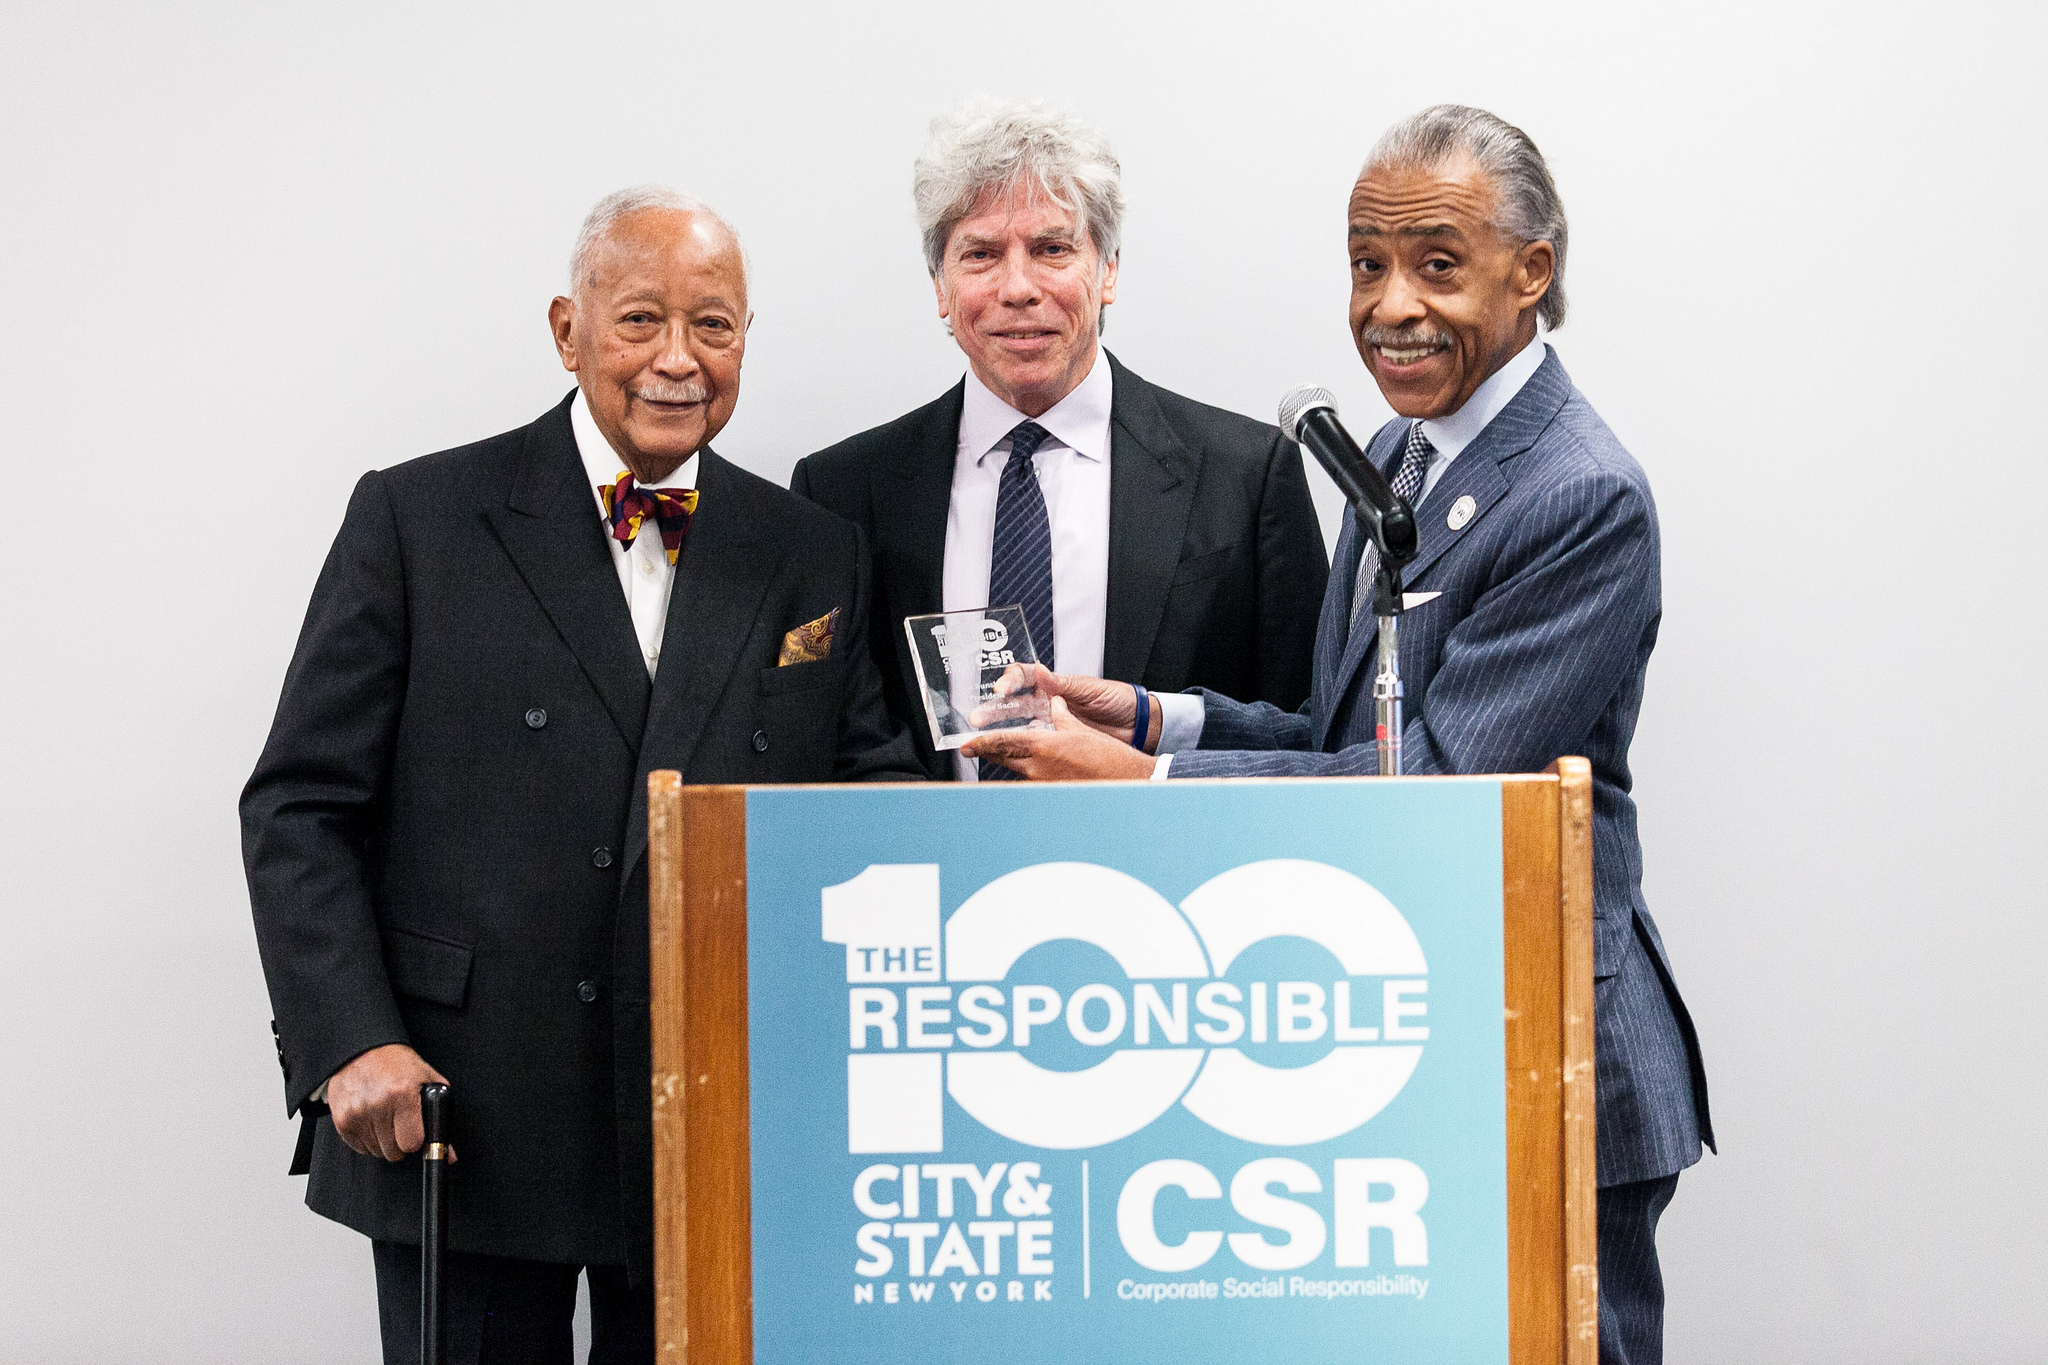 Former NYC Mayor David Dinkins, Ken Sunshine and Al Sharpton at City&State's Responsible 100 event for Corporate Social Responsibility